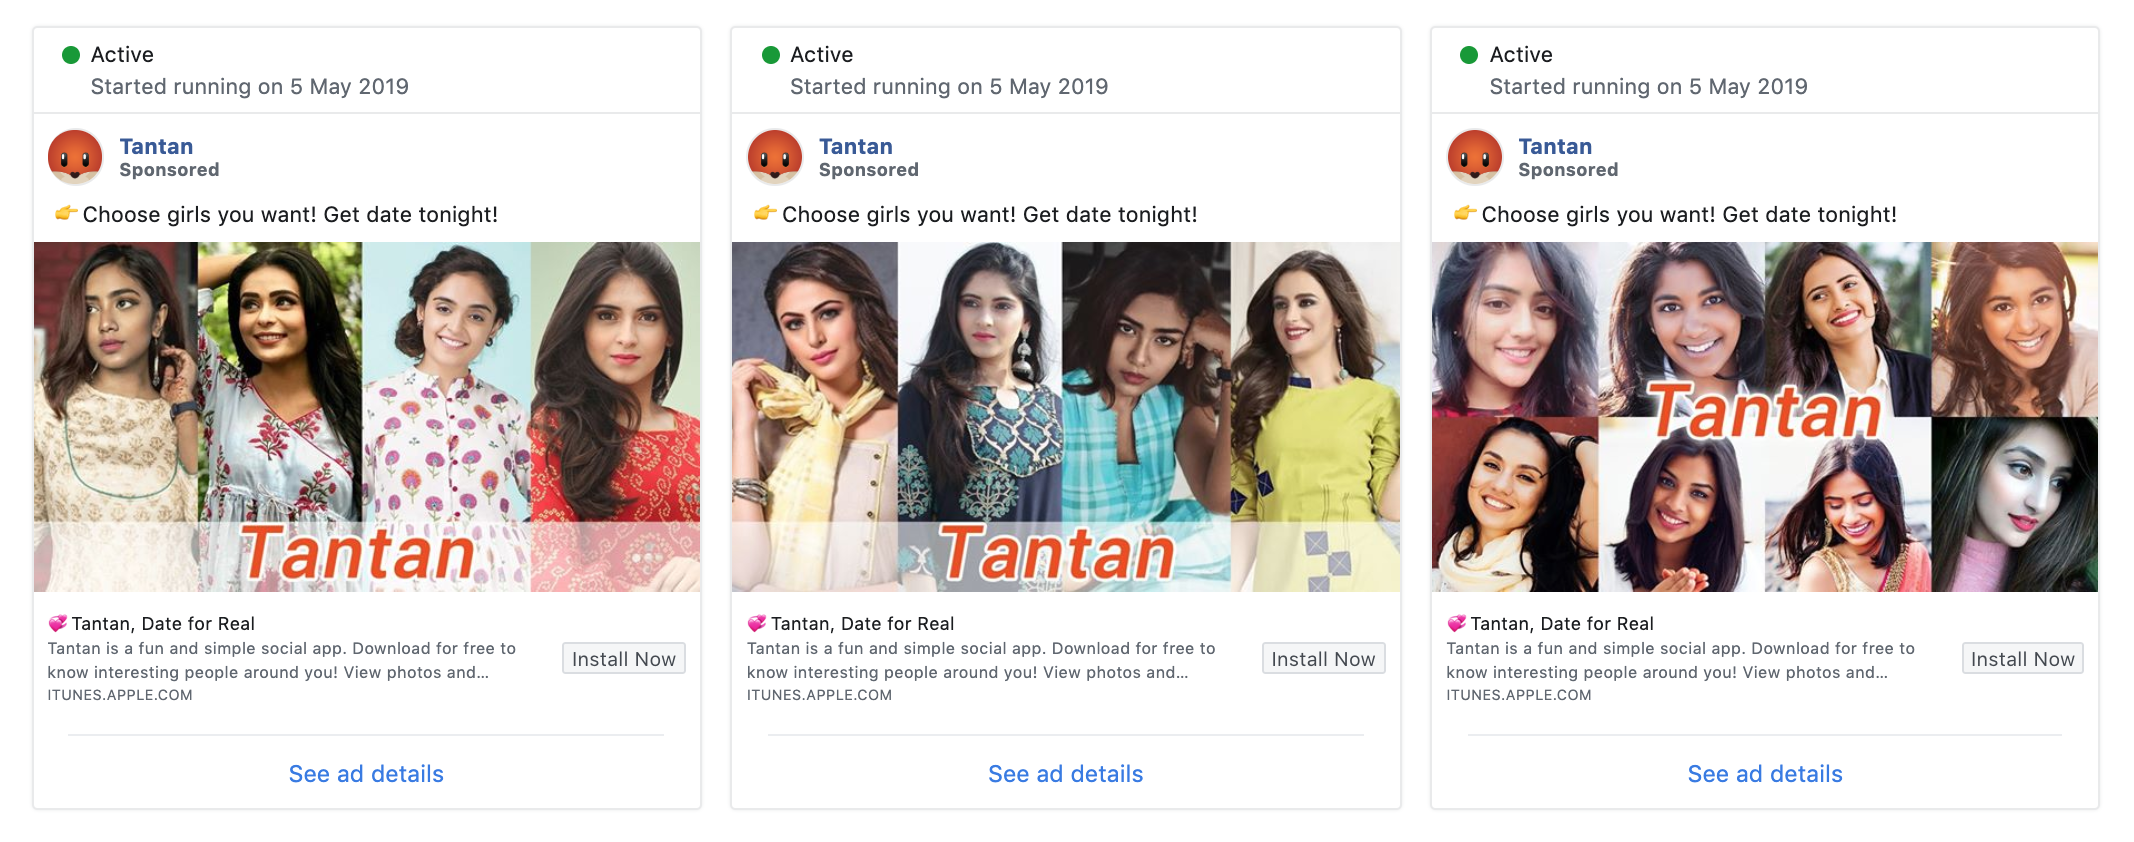 China's Tinder, Tantan, is riding on Tiktok's popularity in